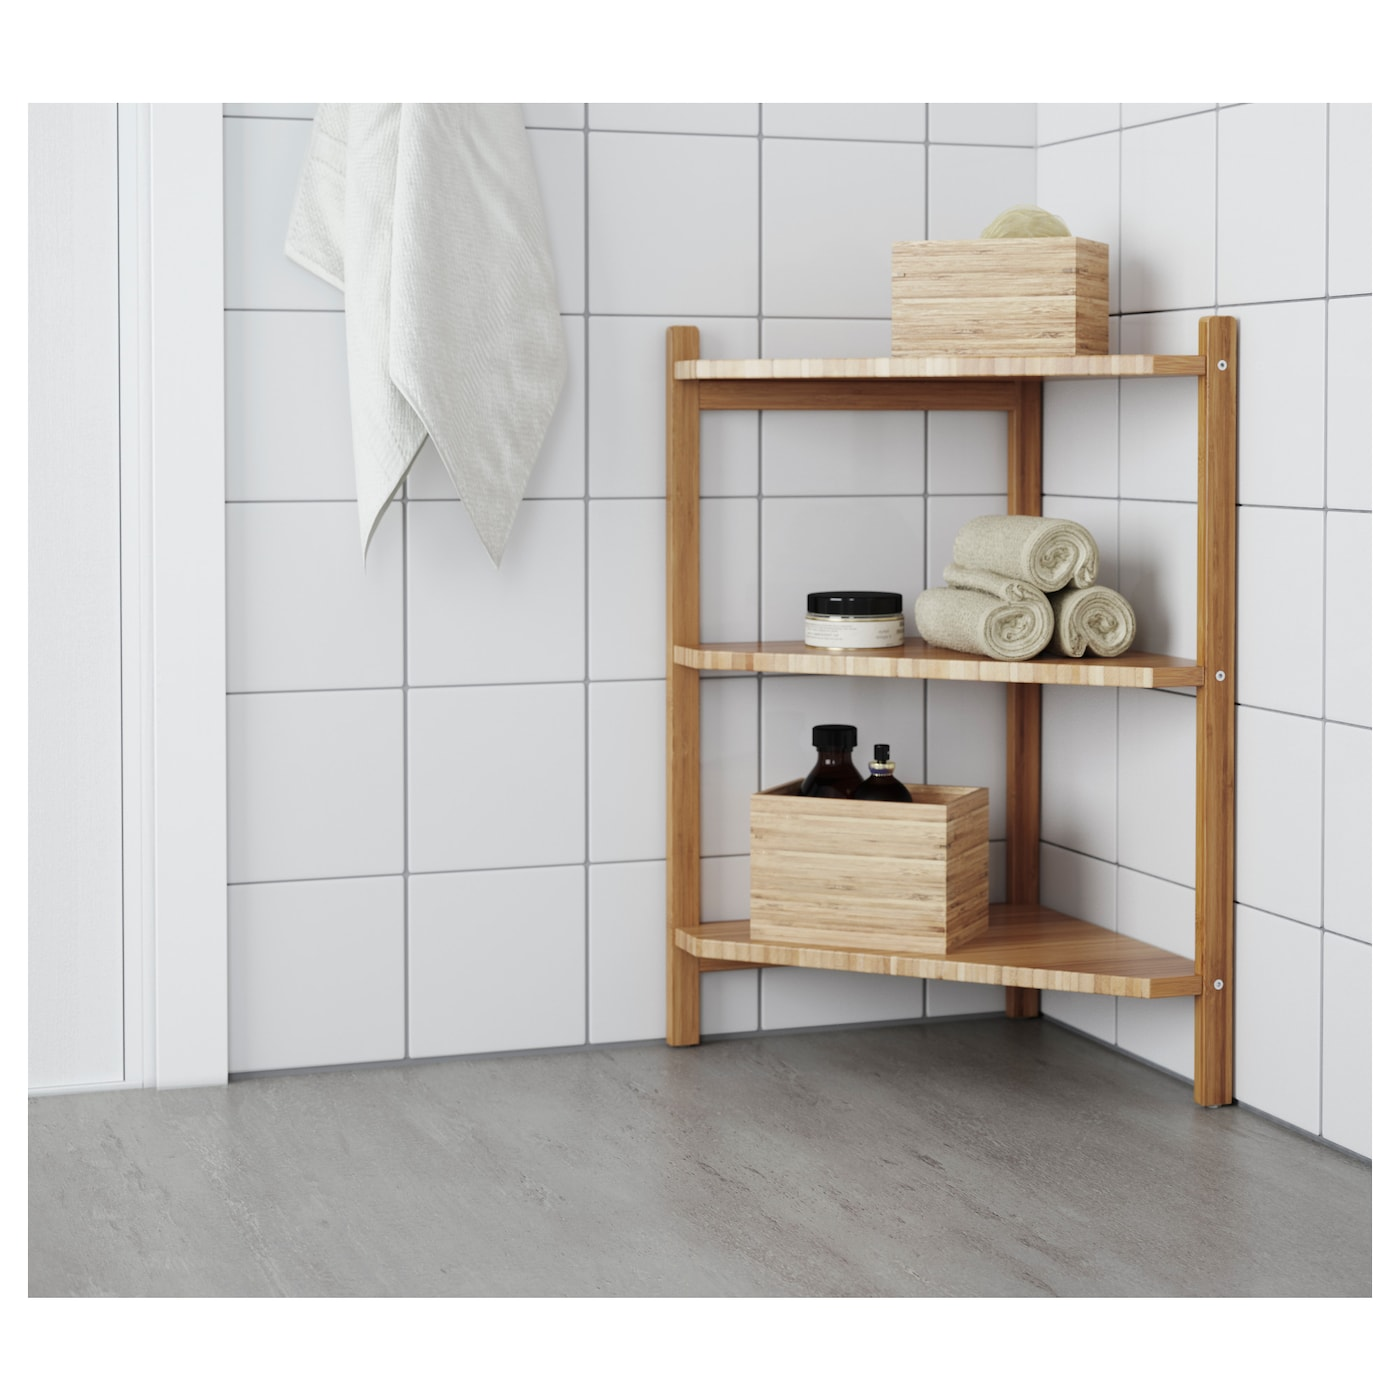 RÅGRUND Wash-basin/corner shelf - bamboo 7x7 cm